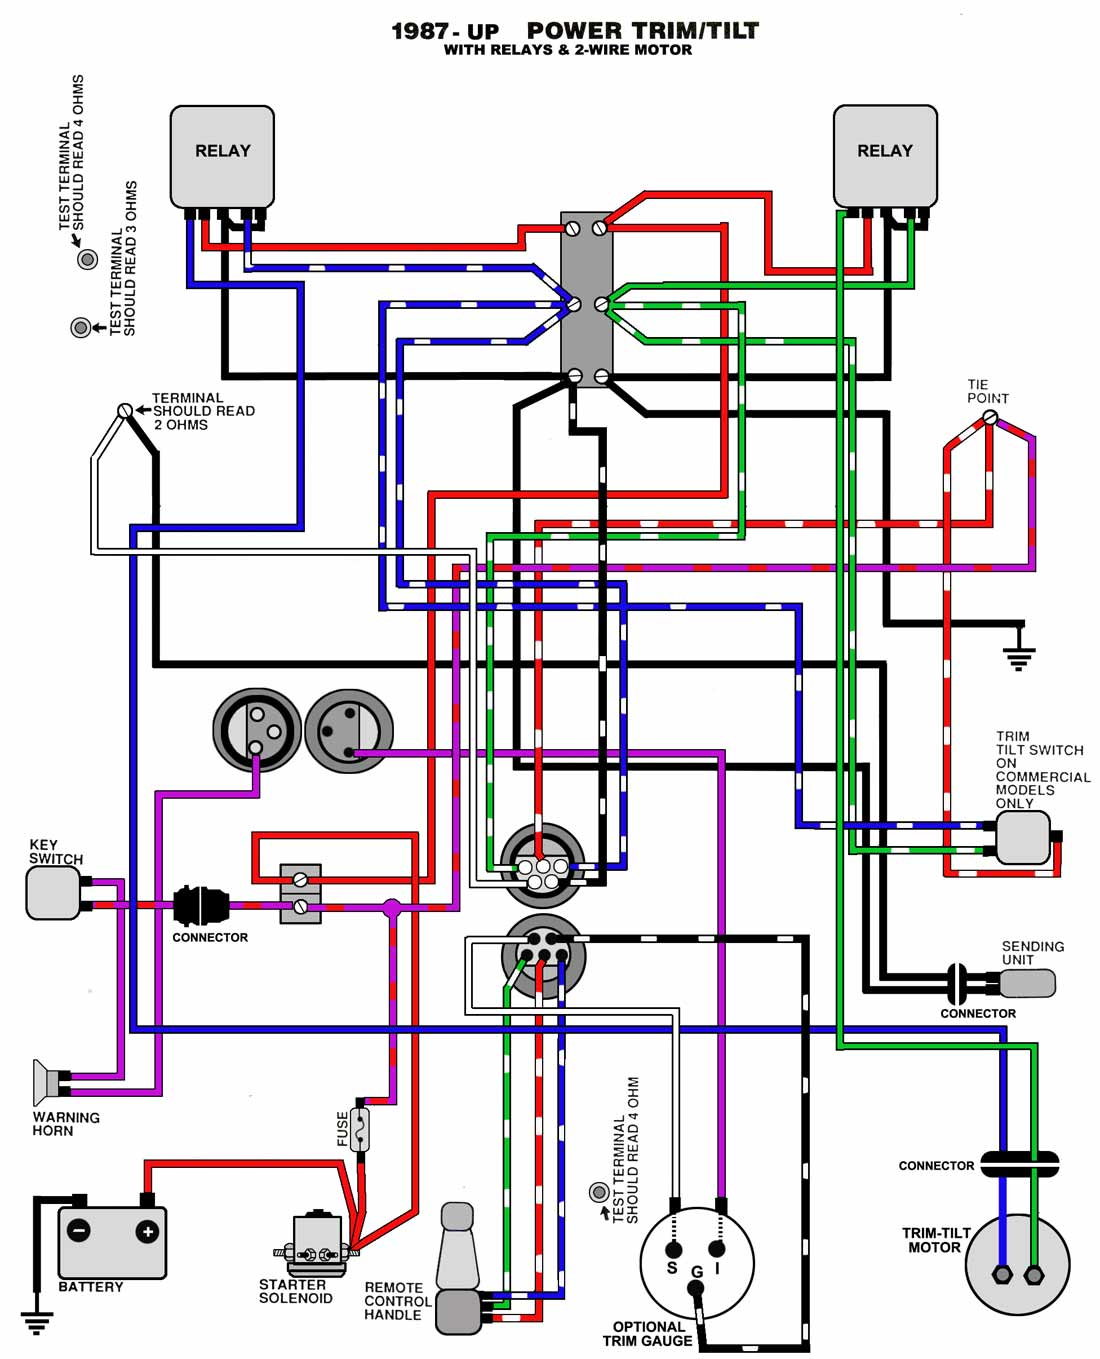 TnT_87_UP yamaha trim gauge wiring diagram yamaha wiring diagrams for diy  at readyjetset.co